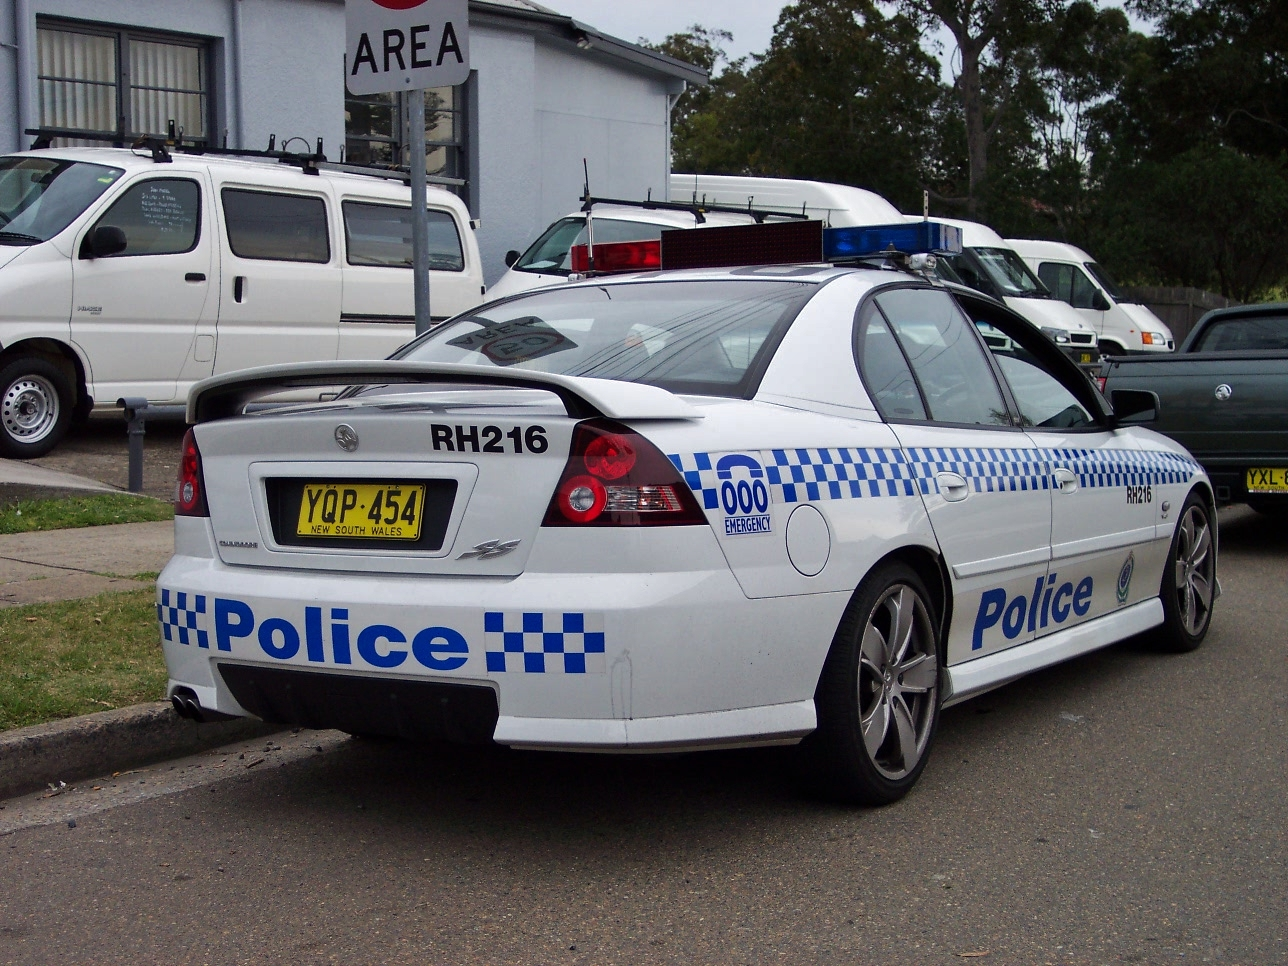 File2003 holden vy commodore ss nsw police 5497889327g file2003 holden vy commodore ss nsw police 5497889327g vanachro Images